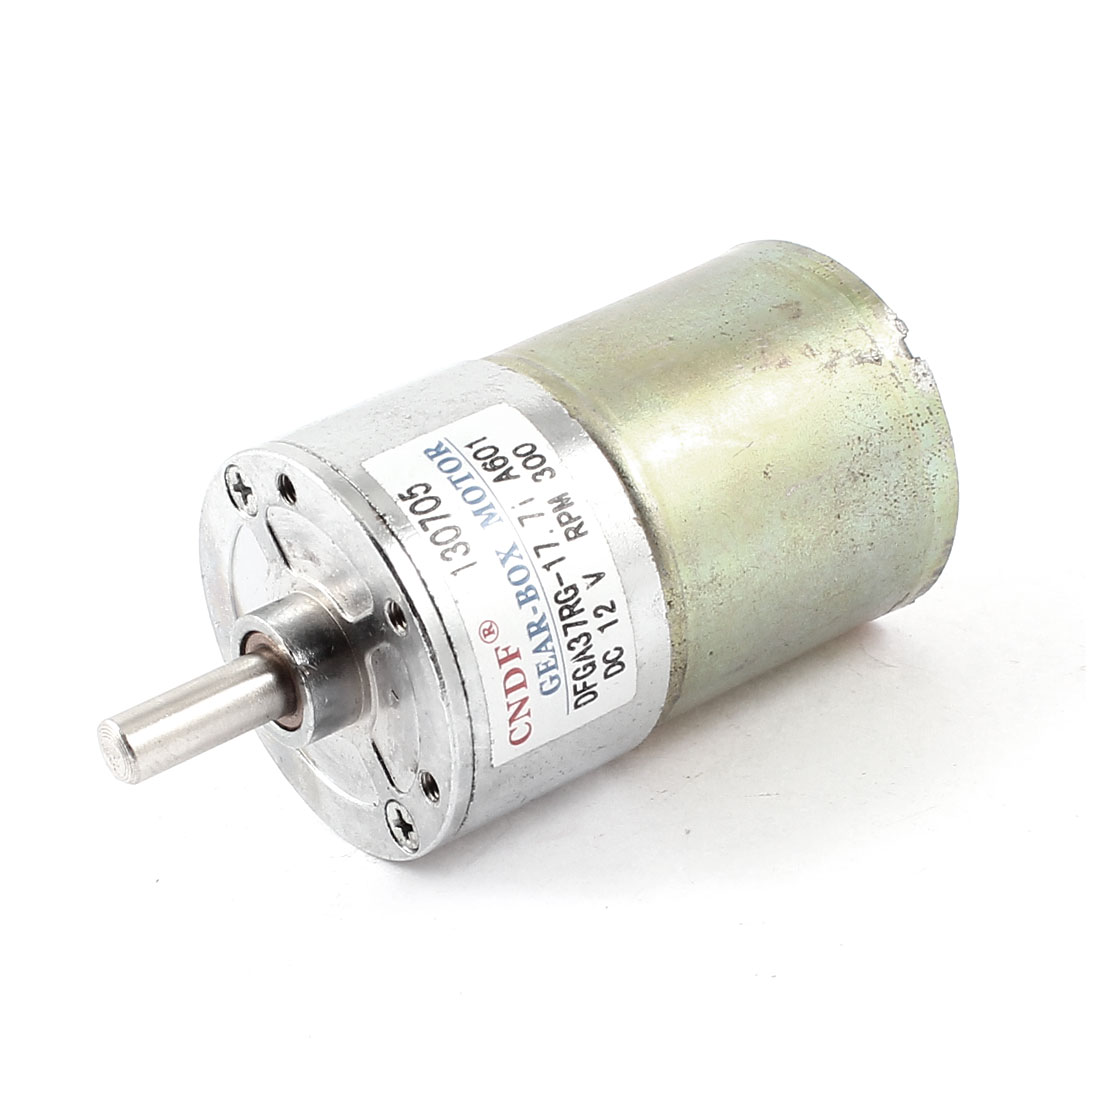 DC 12V 300RPM 6mm Shaft Magnetic Electric Gear Box Motor Spare Parts